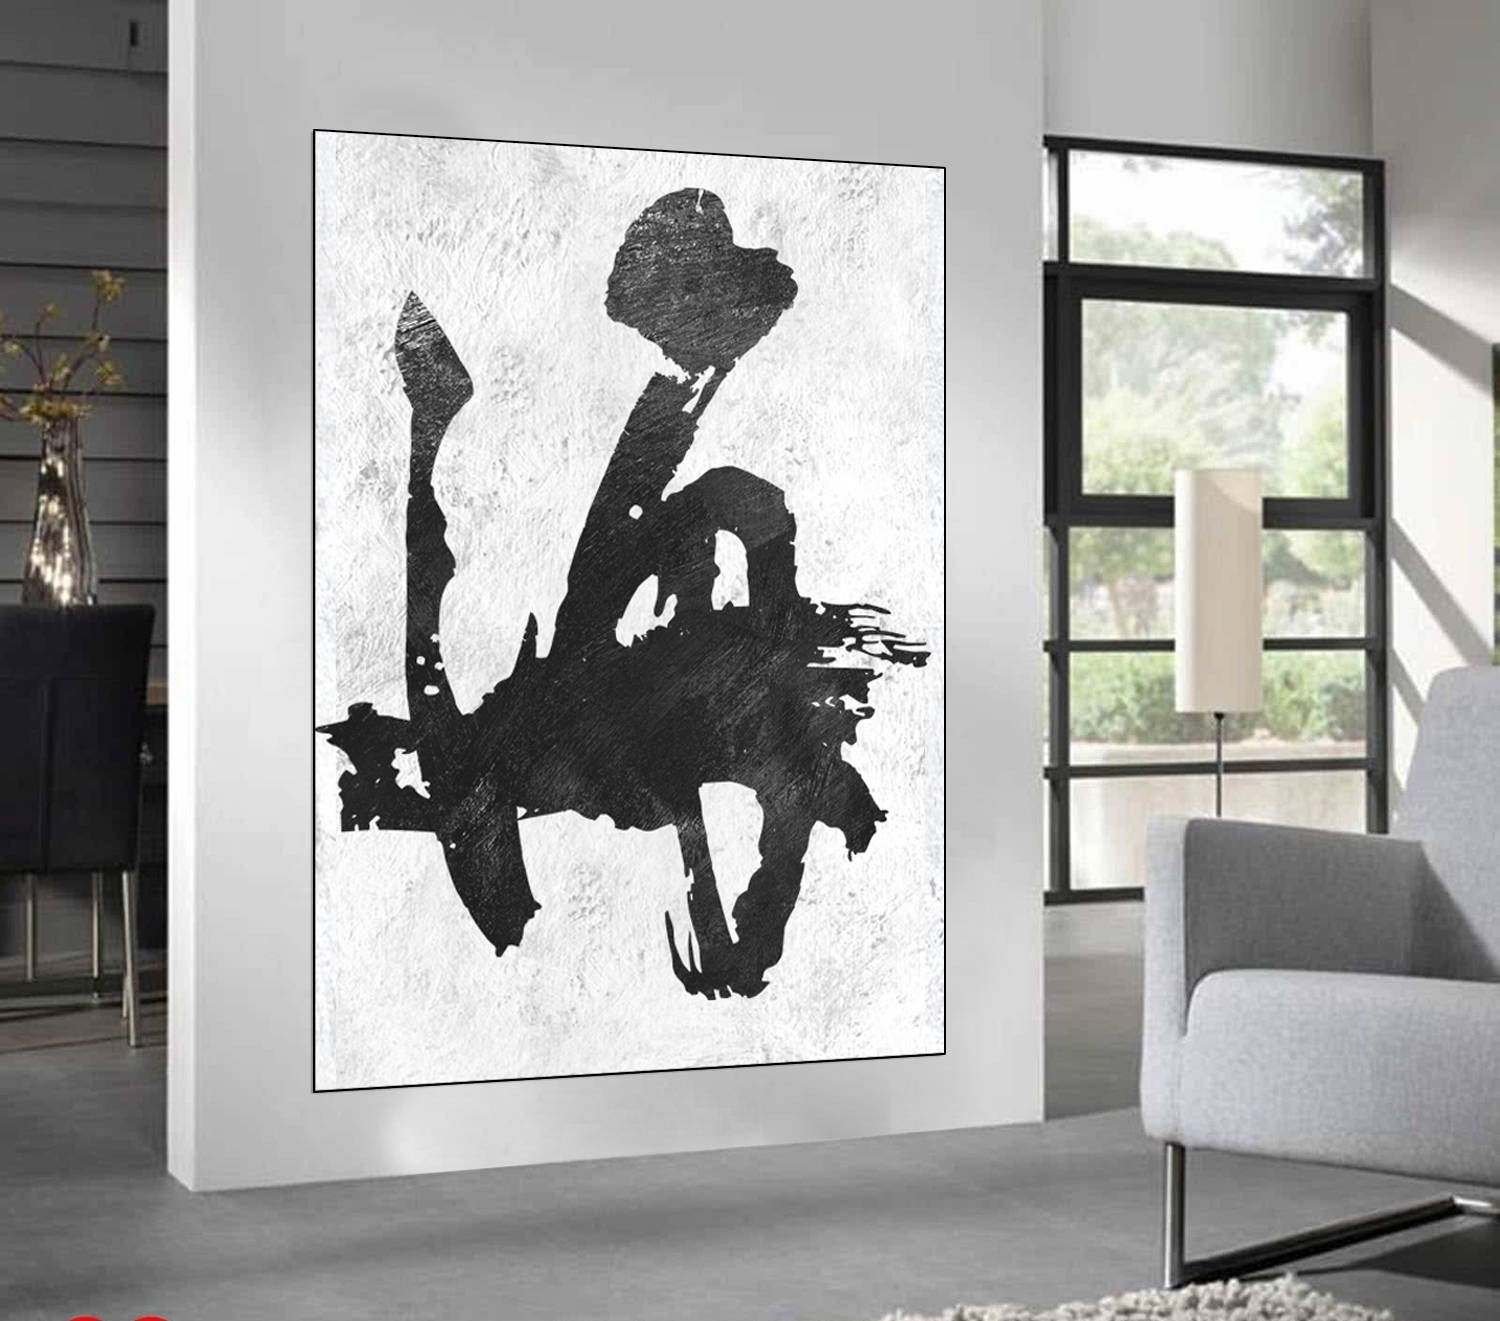 Black And White Abstract Wall Art | World Of Example Within 2017 West Elm Abstract Wall Art (View 4 of 20)